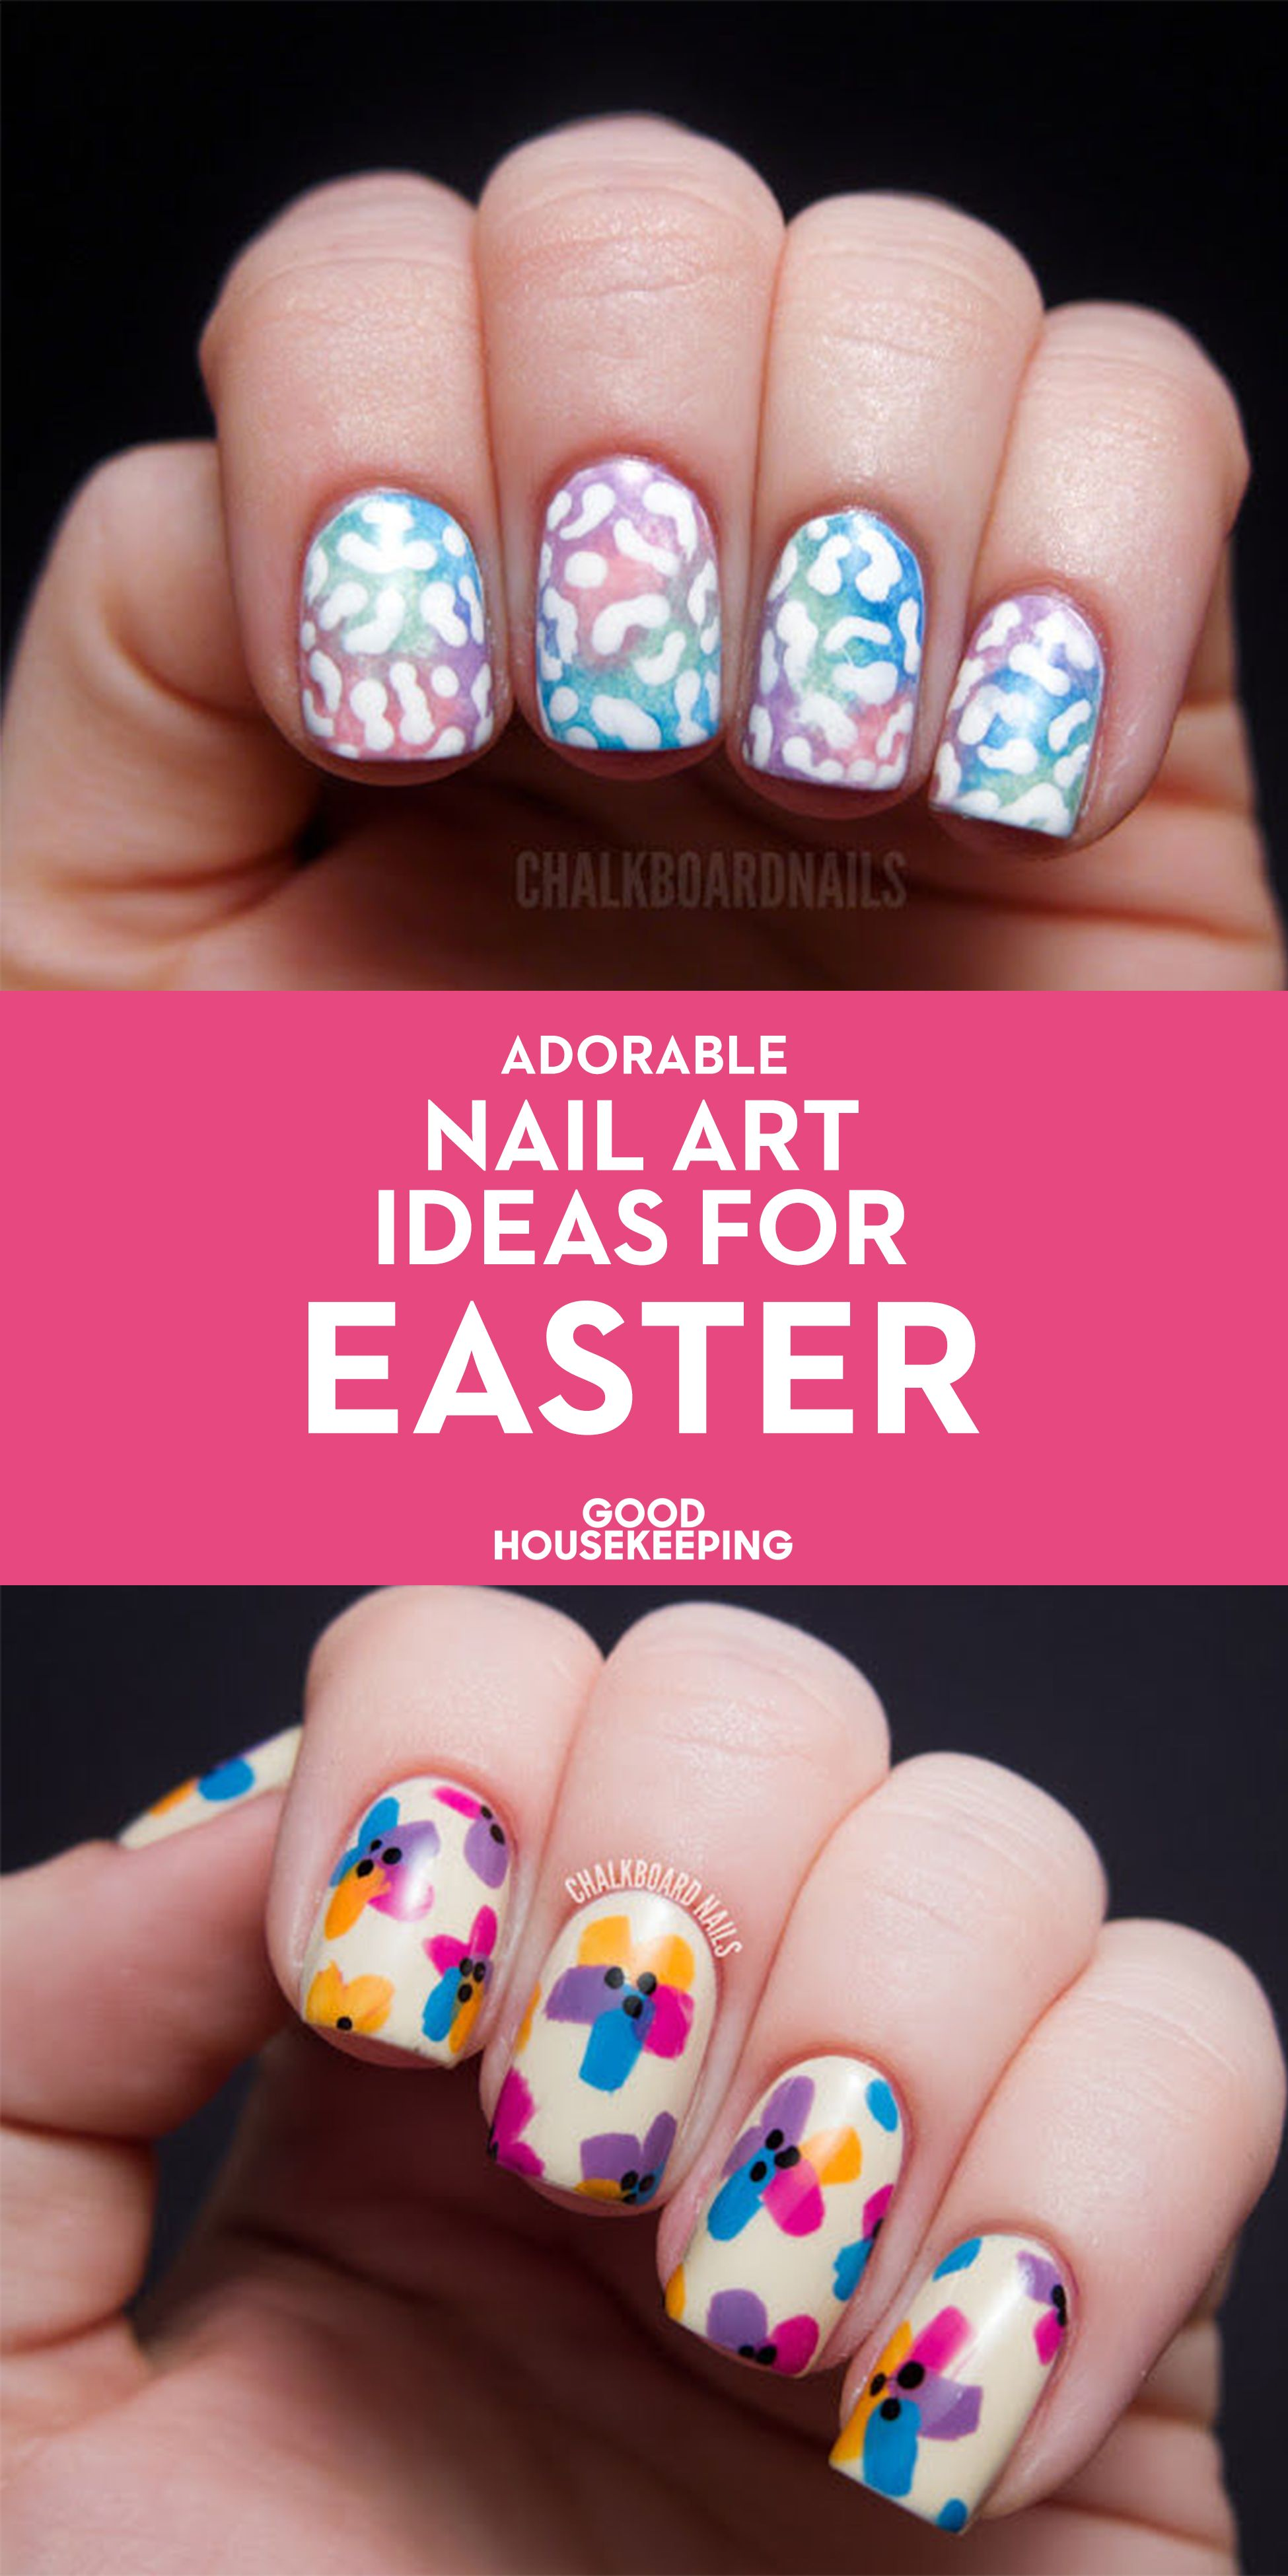 21 Adorable Nail Art Ideas for Easter